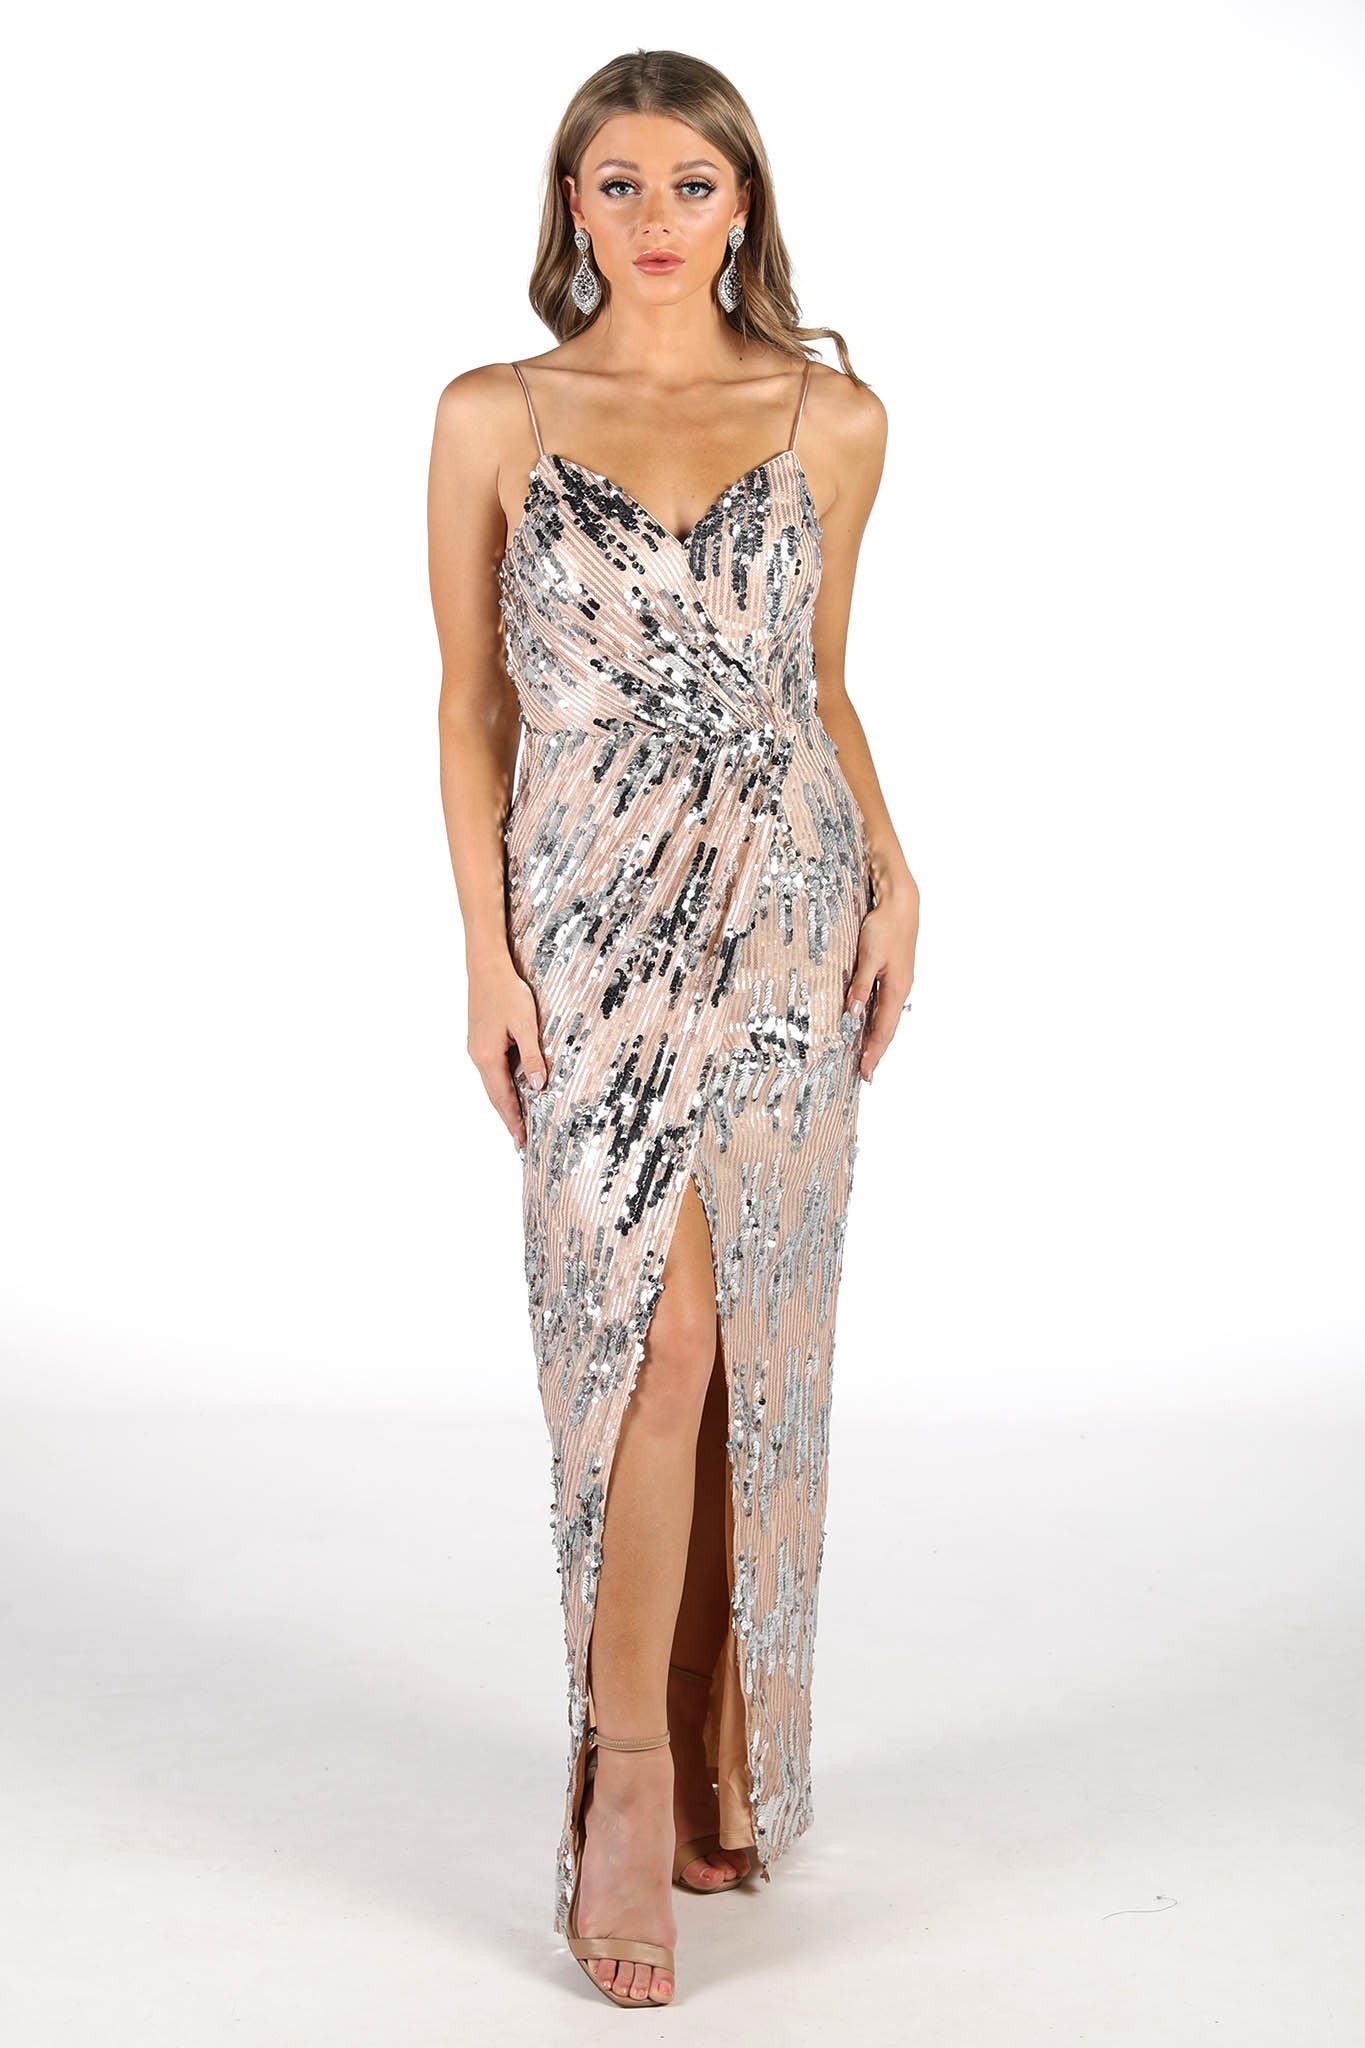 Champagne/Silver sequin maxi dress with V neckline, thin shoulder straps, faux wrap design, front split and column maxi silhouette